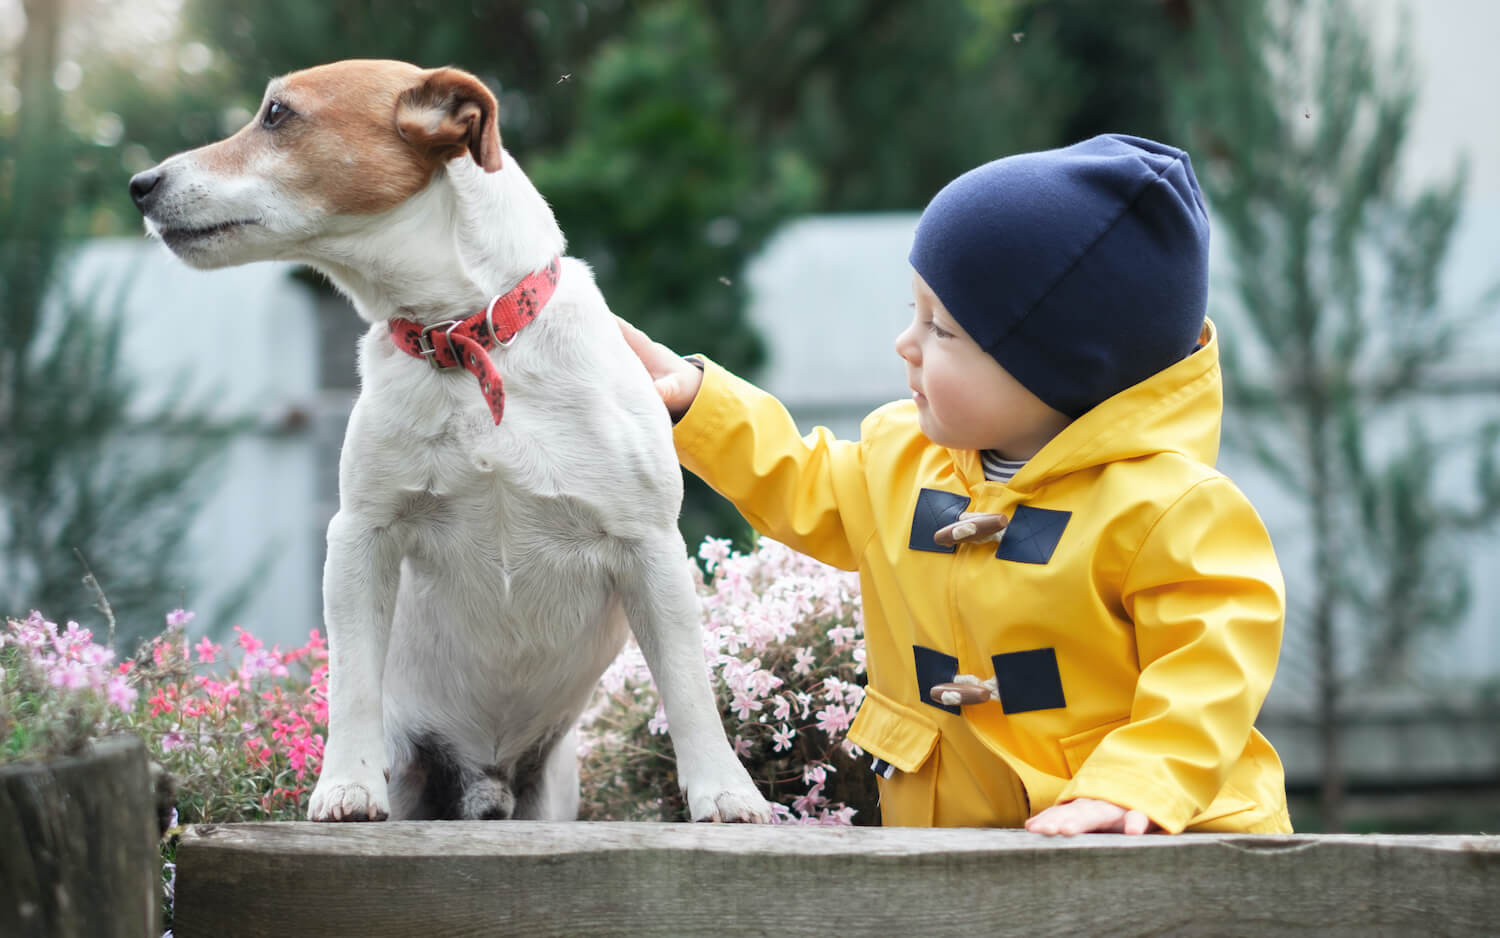 small-kid-with-dog-YC6WDXN